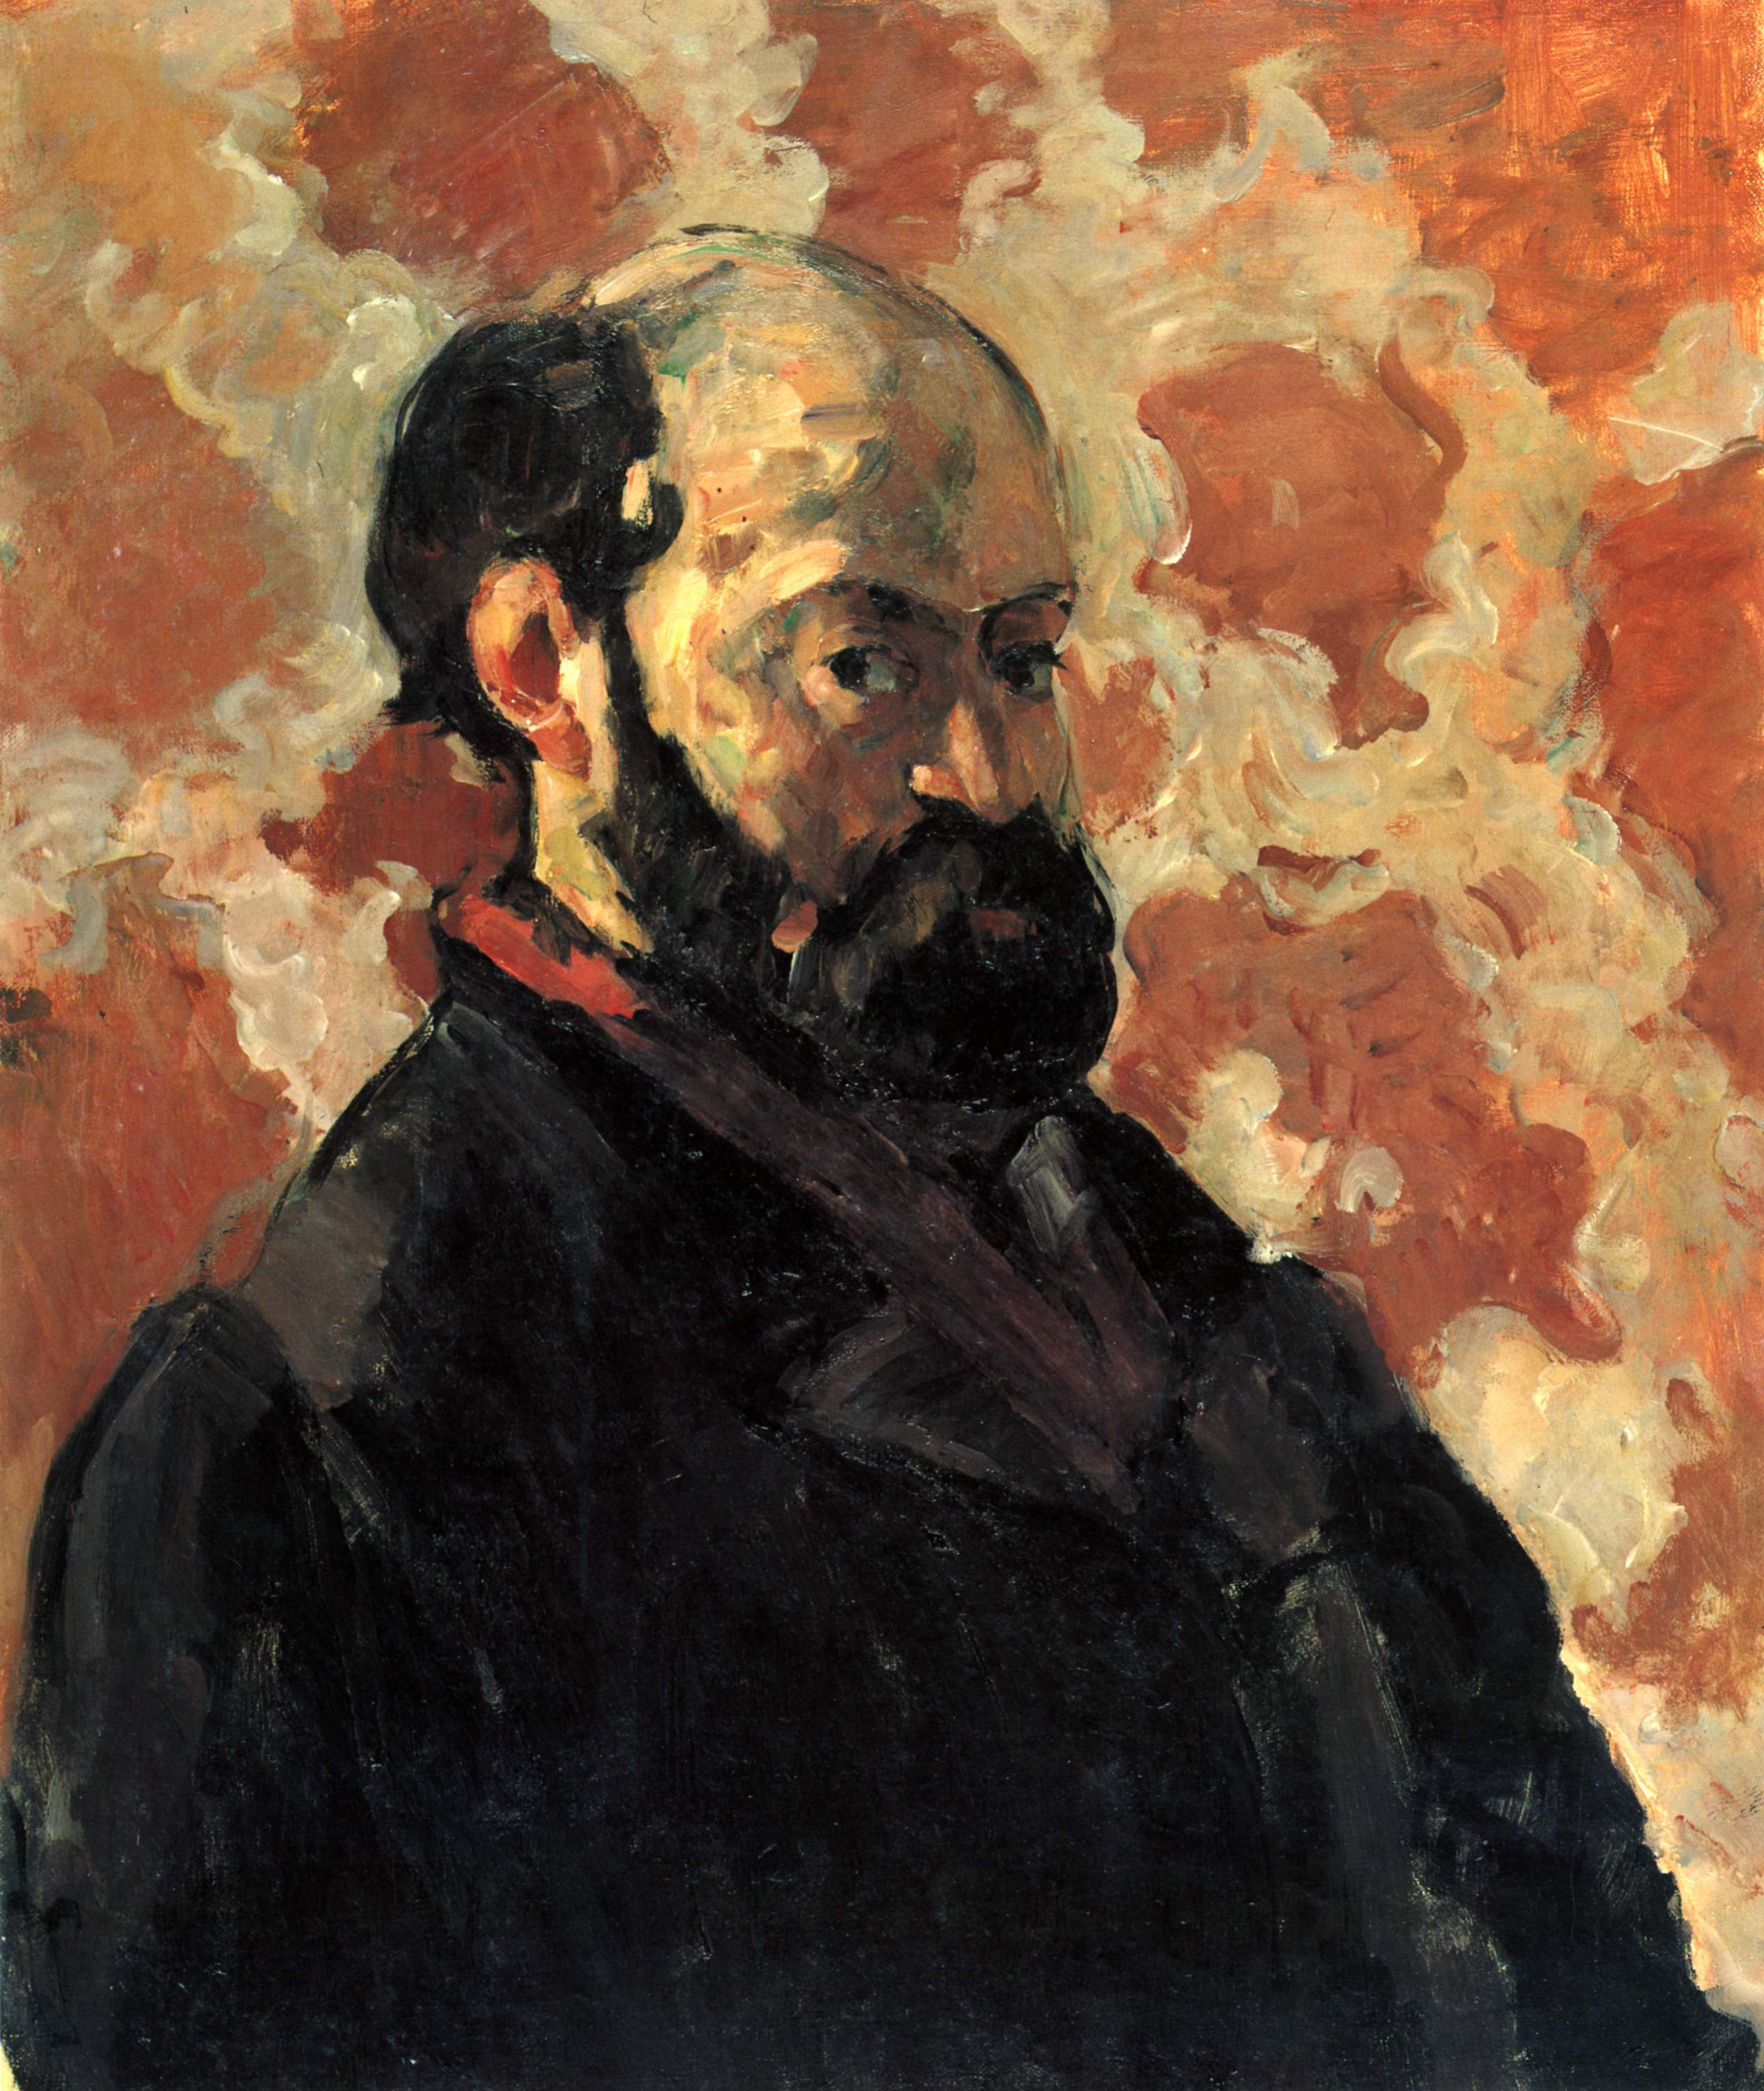 Self-portrait in front of pink background 1875